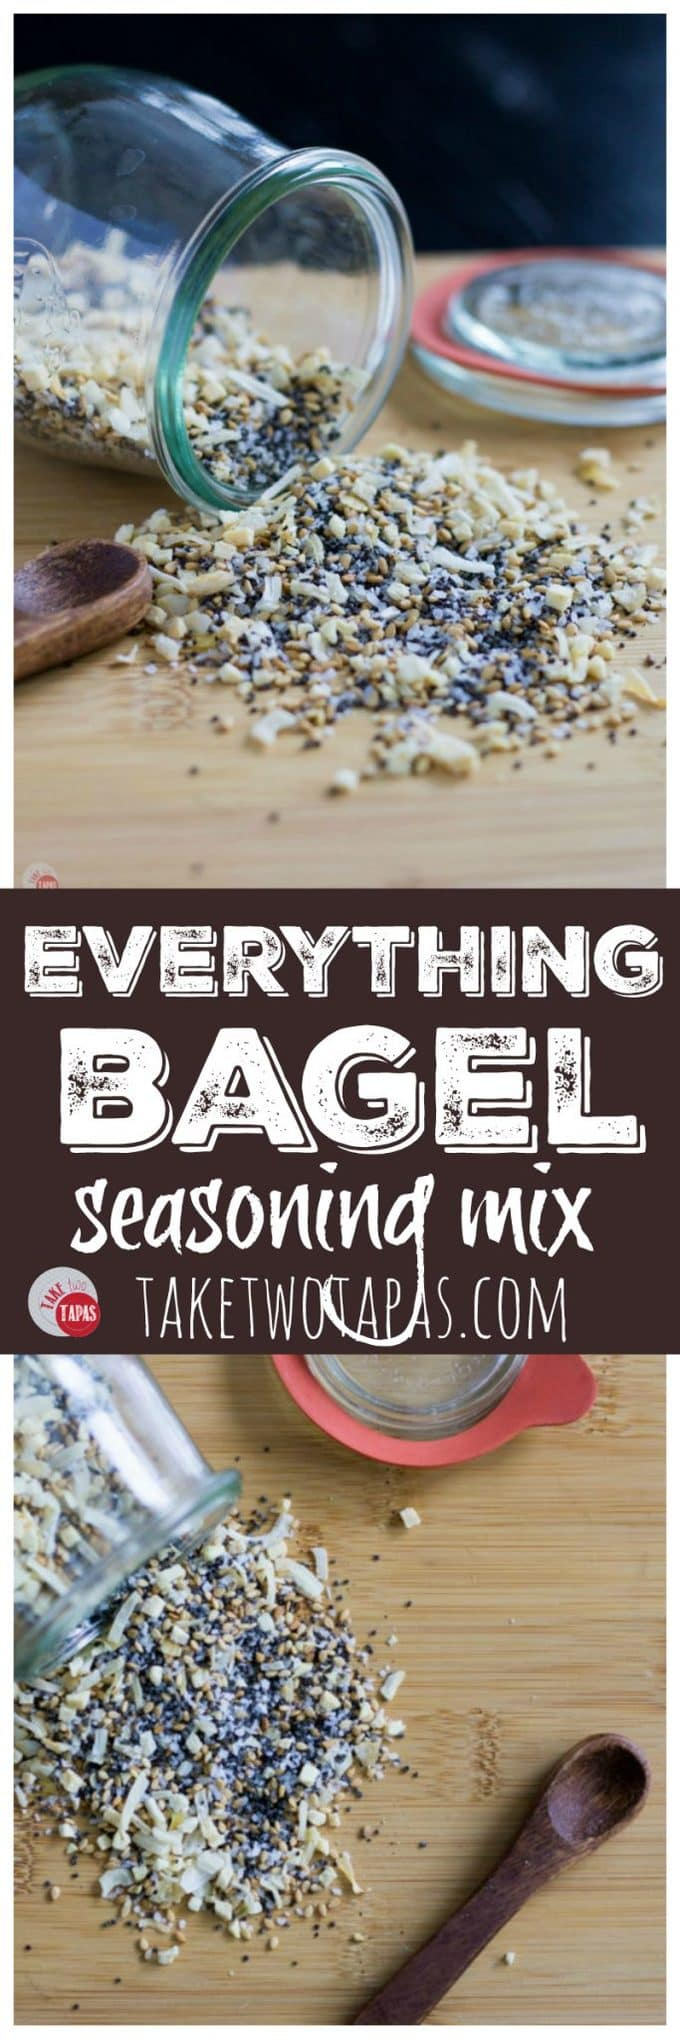 Make your own Everything Bagel Seasoning Mix at home with your own pantry spices! | Everything Bagel Seasoning Mix Recipe | Take Two Tapas #EverythingBagelSeasoning #EverythingBagel #BagelSeasoning